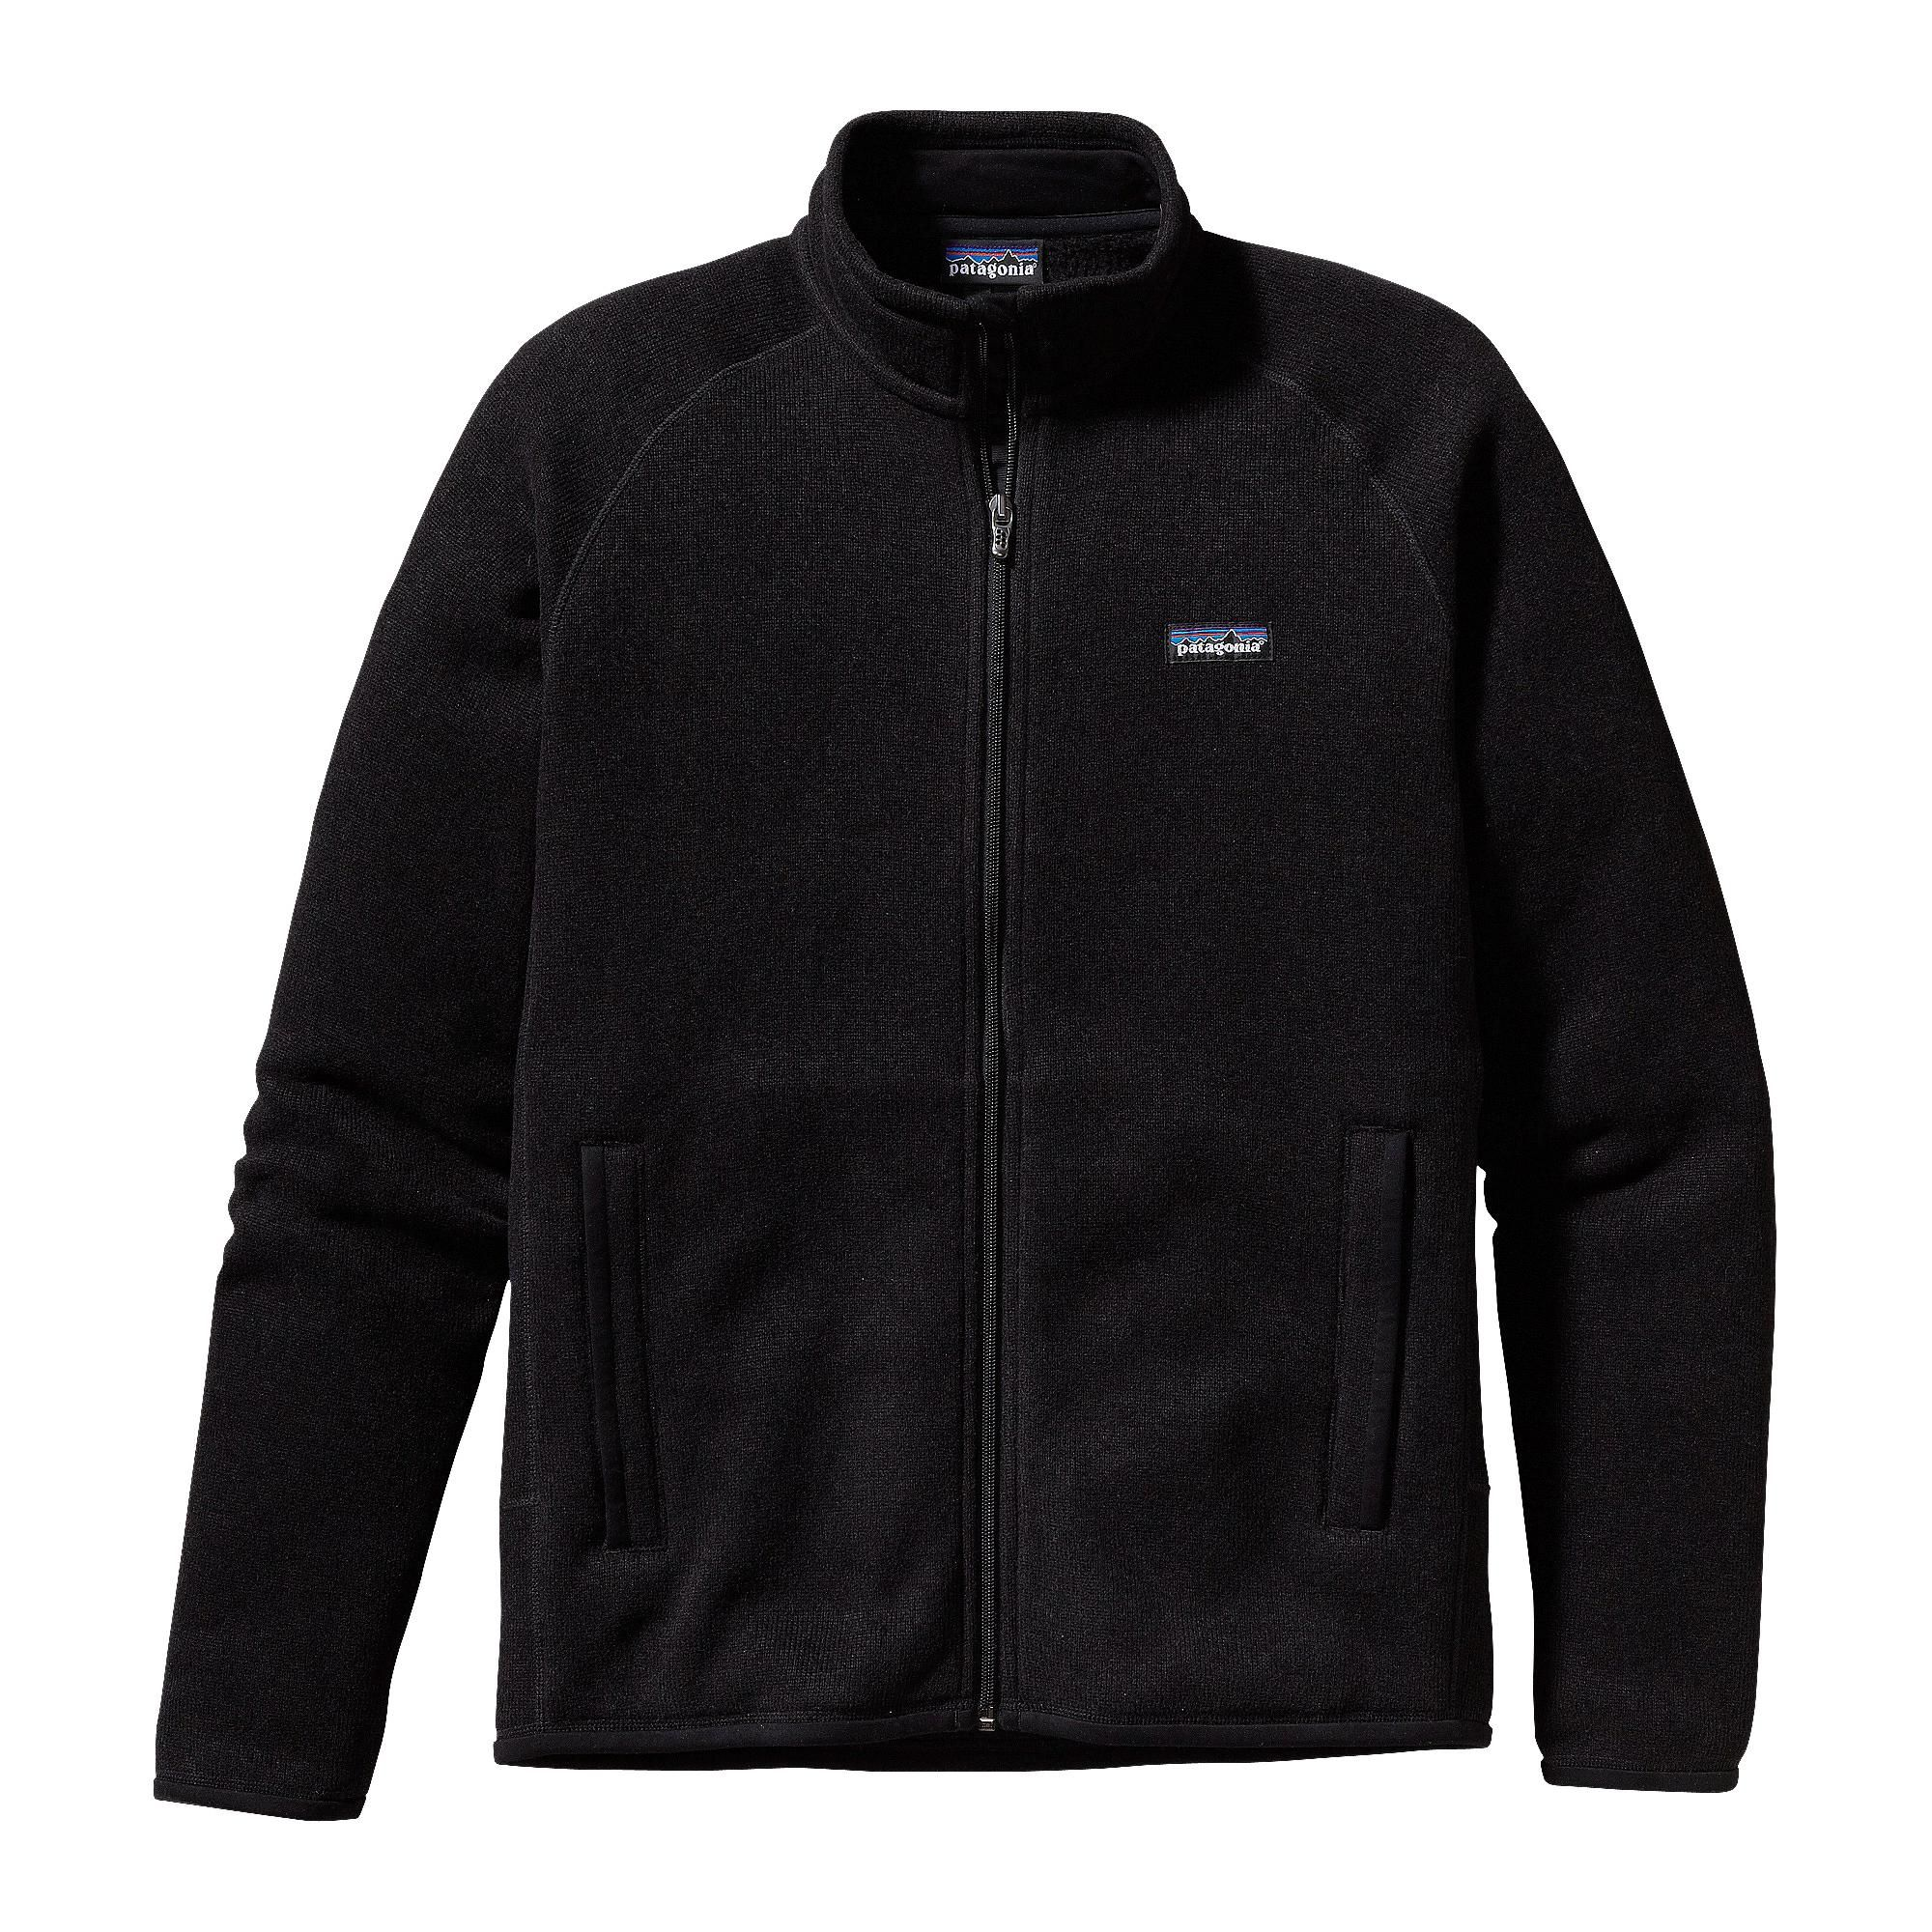 Men's Better Sweater® Fleece Jacket | Patagonia